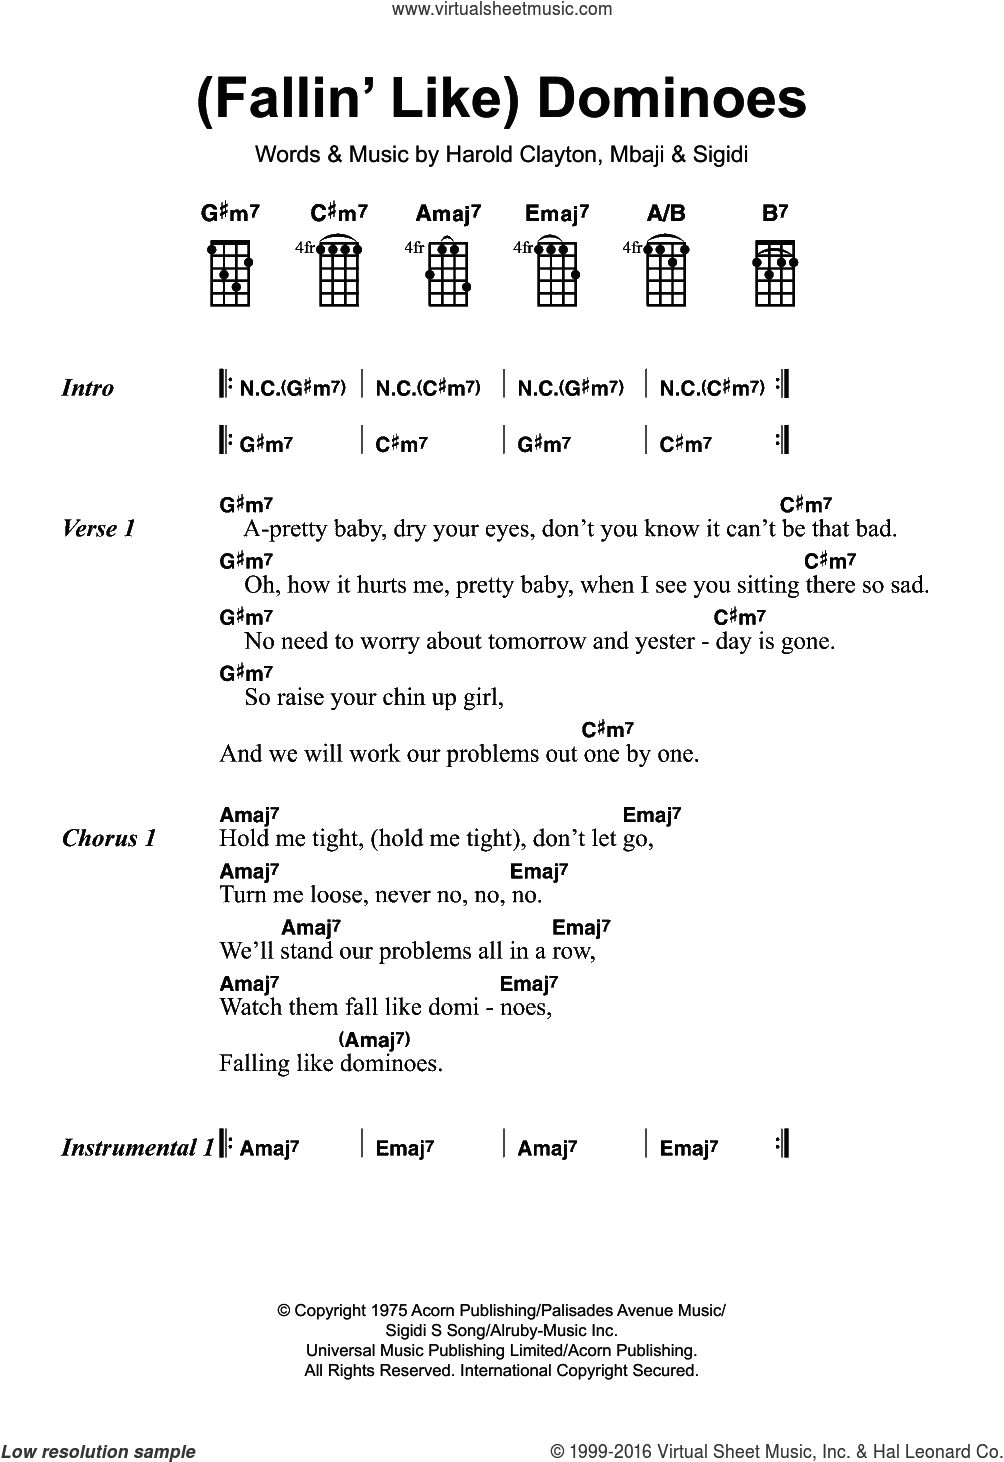 (Fallin' Like) Dominoes sheet music for ukulele by Harold Clayton. Score Image Preview.